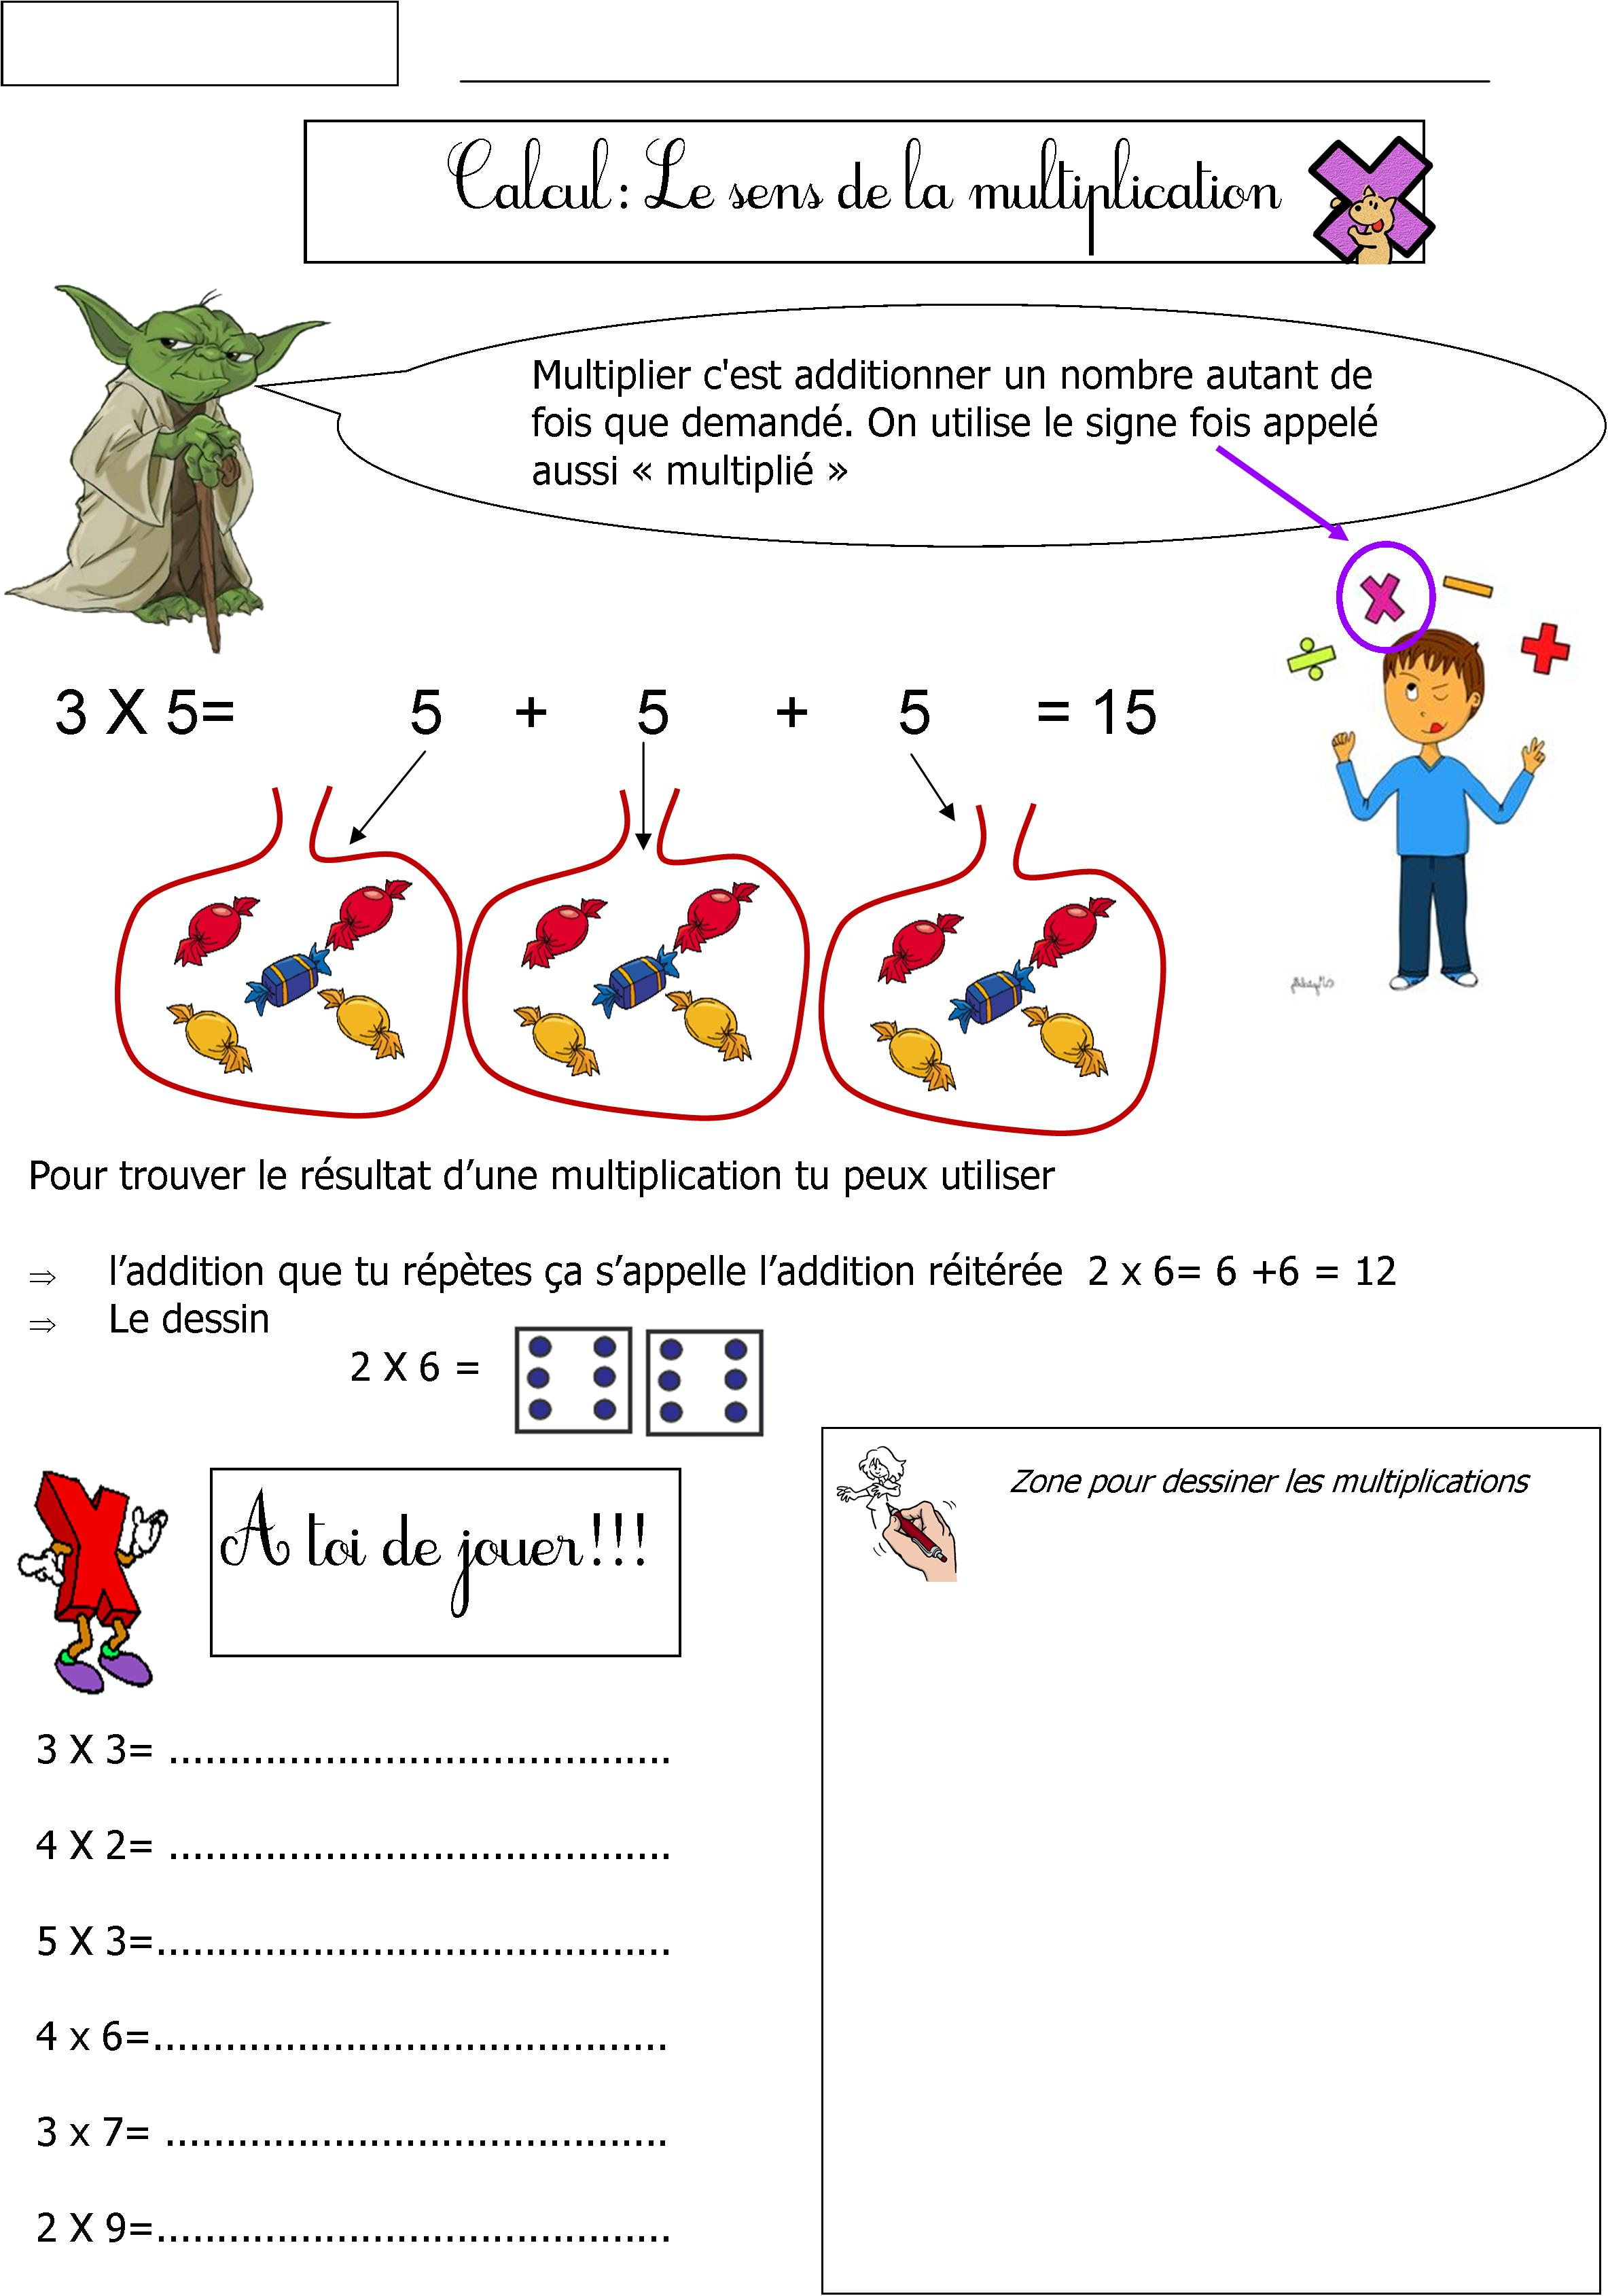 Math matiques ce1 blog de monsieur mathieu gs cp ce1 ce2 cm1 for La table du multiplication